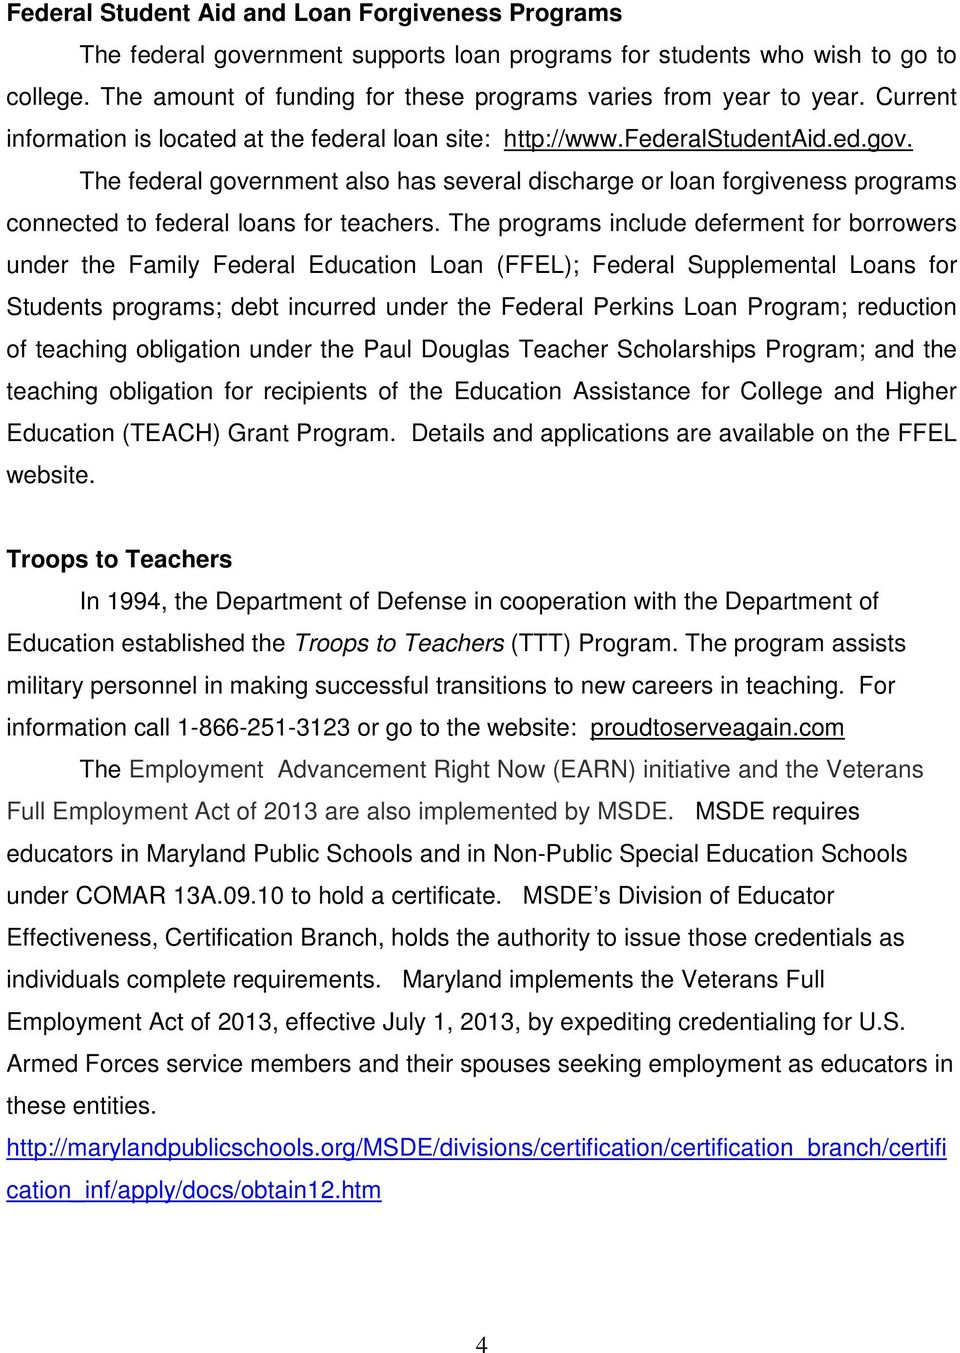 Teacher staffing report maryland state department of education the federal government also has several discharge or loan forgiveness programs connected to federal loans for 1betcityfo Image collections